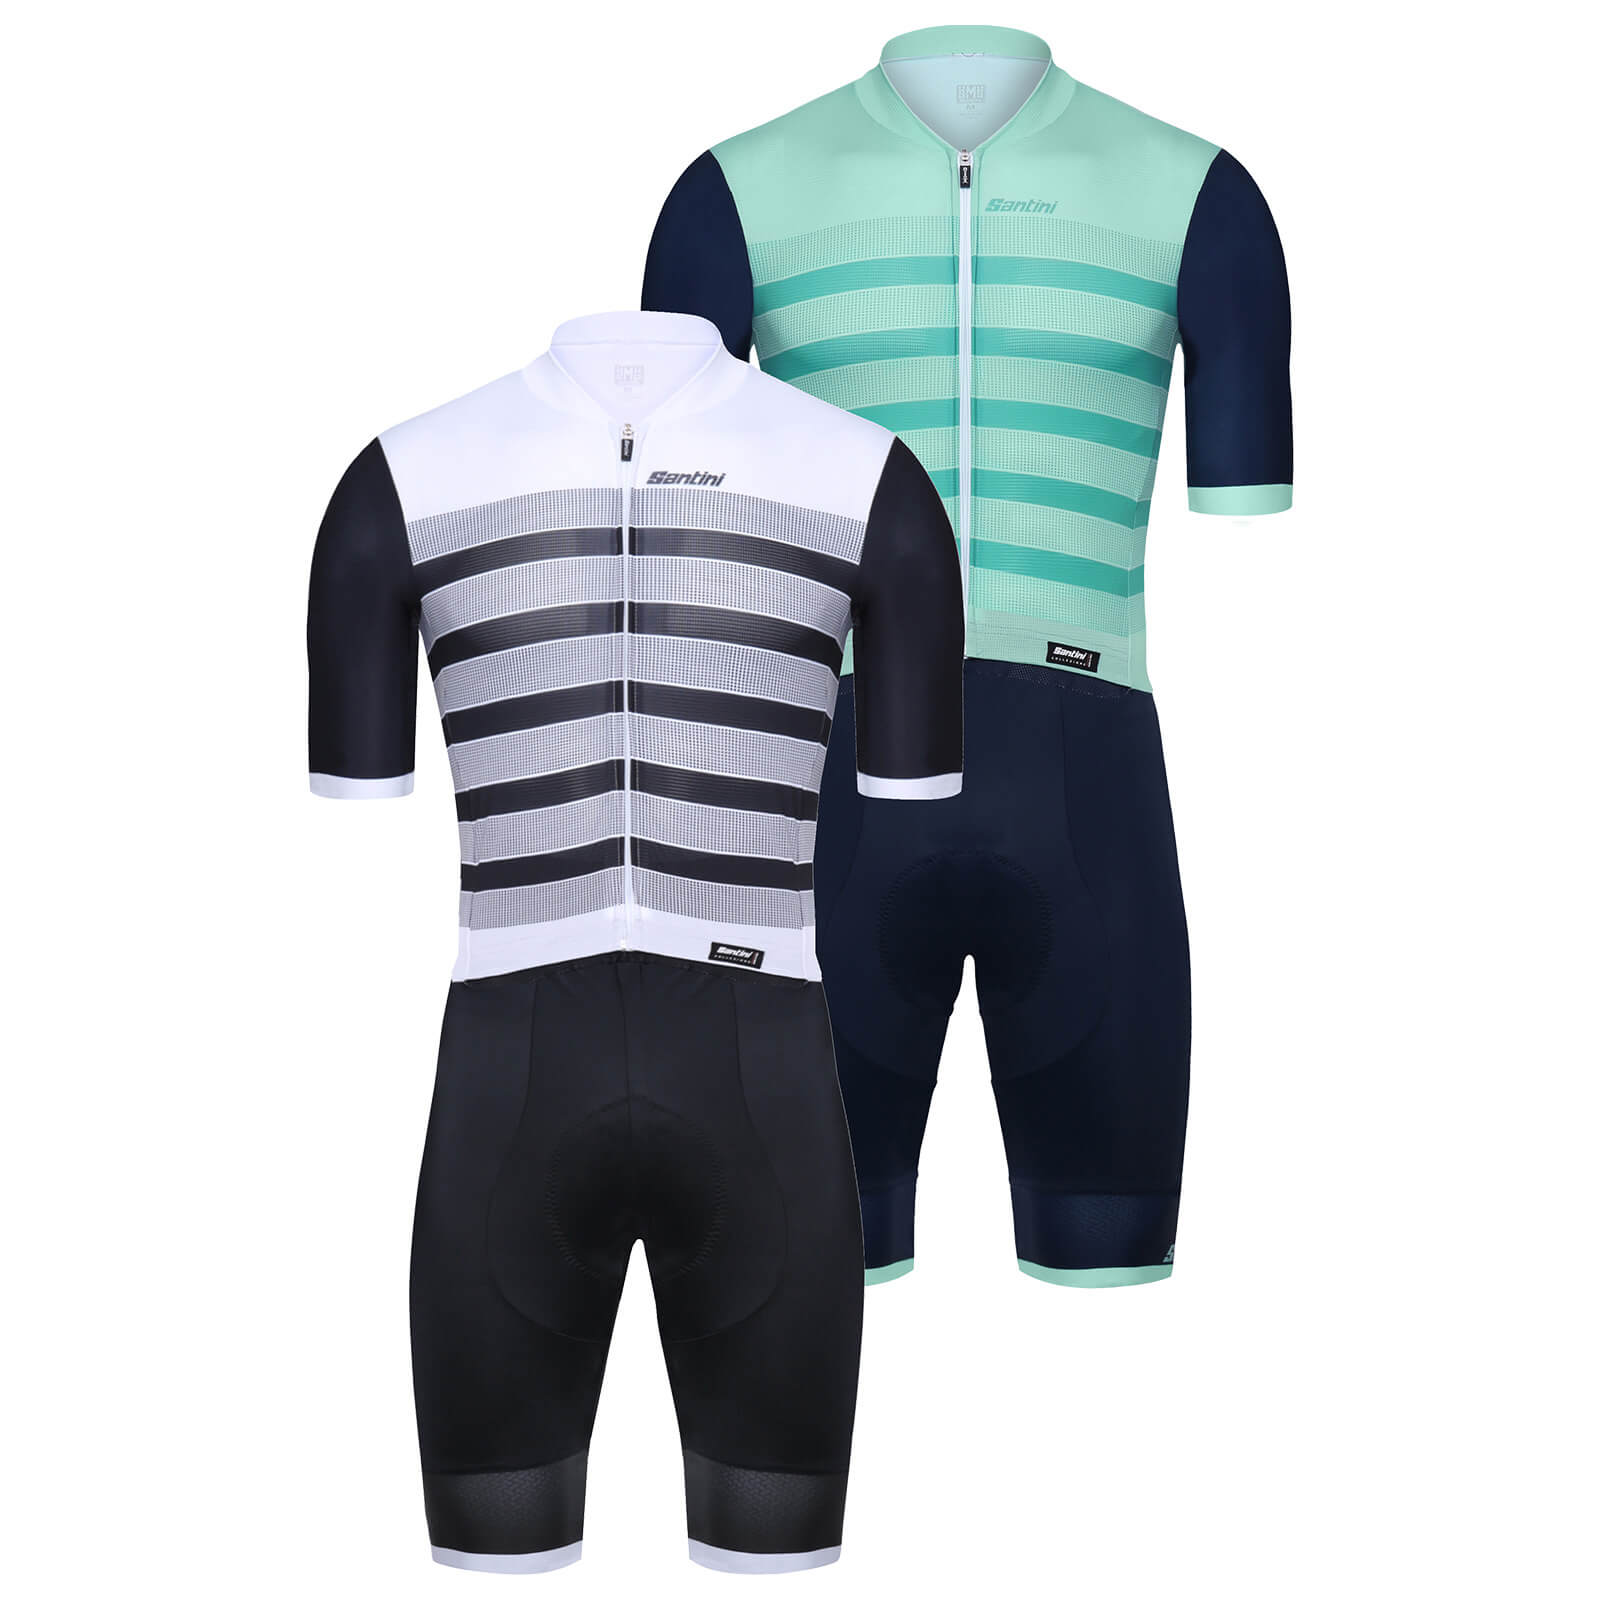 New Black Skinsuit Mens Size: up to 5'10""